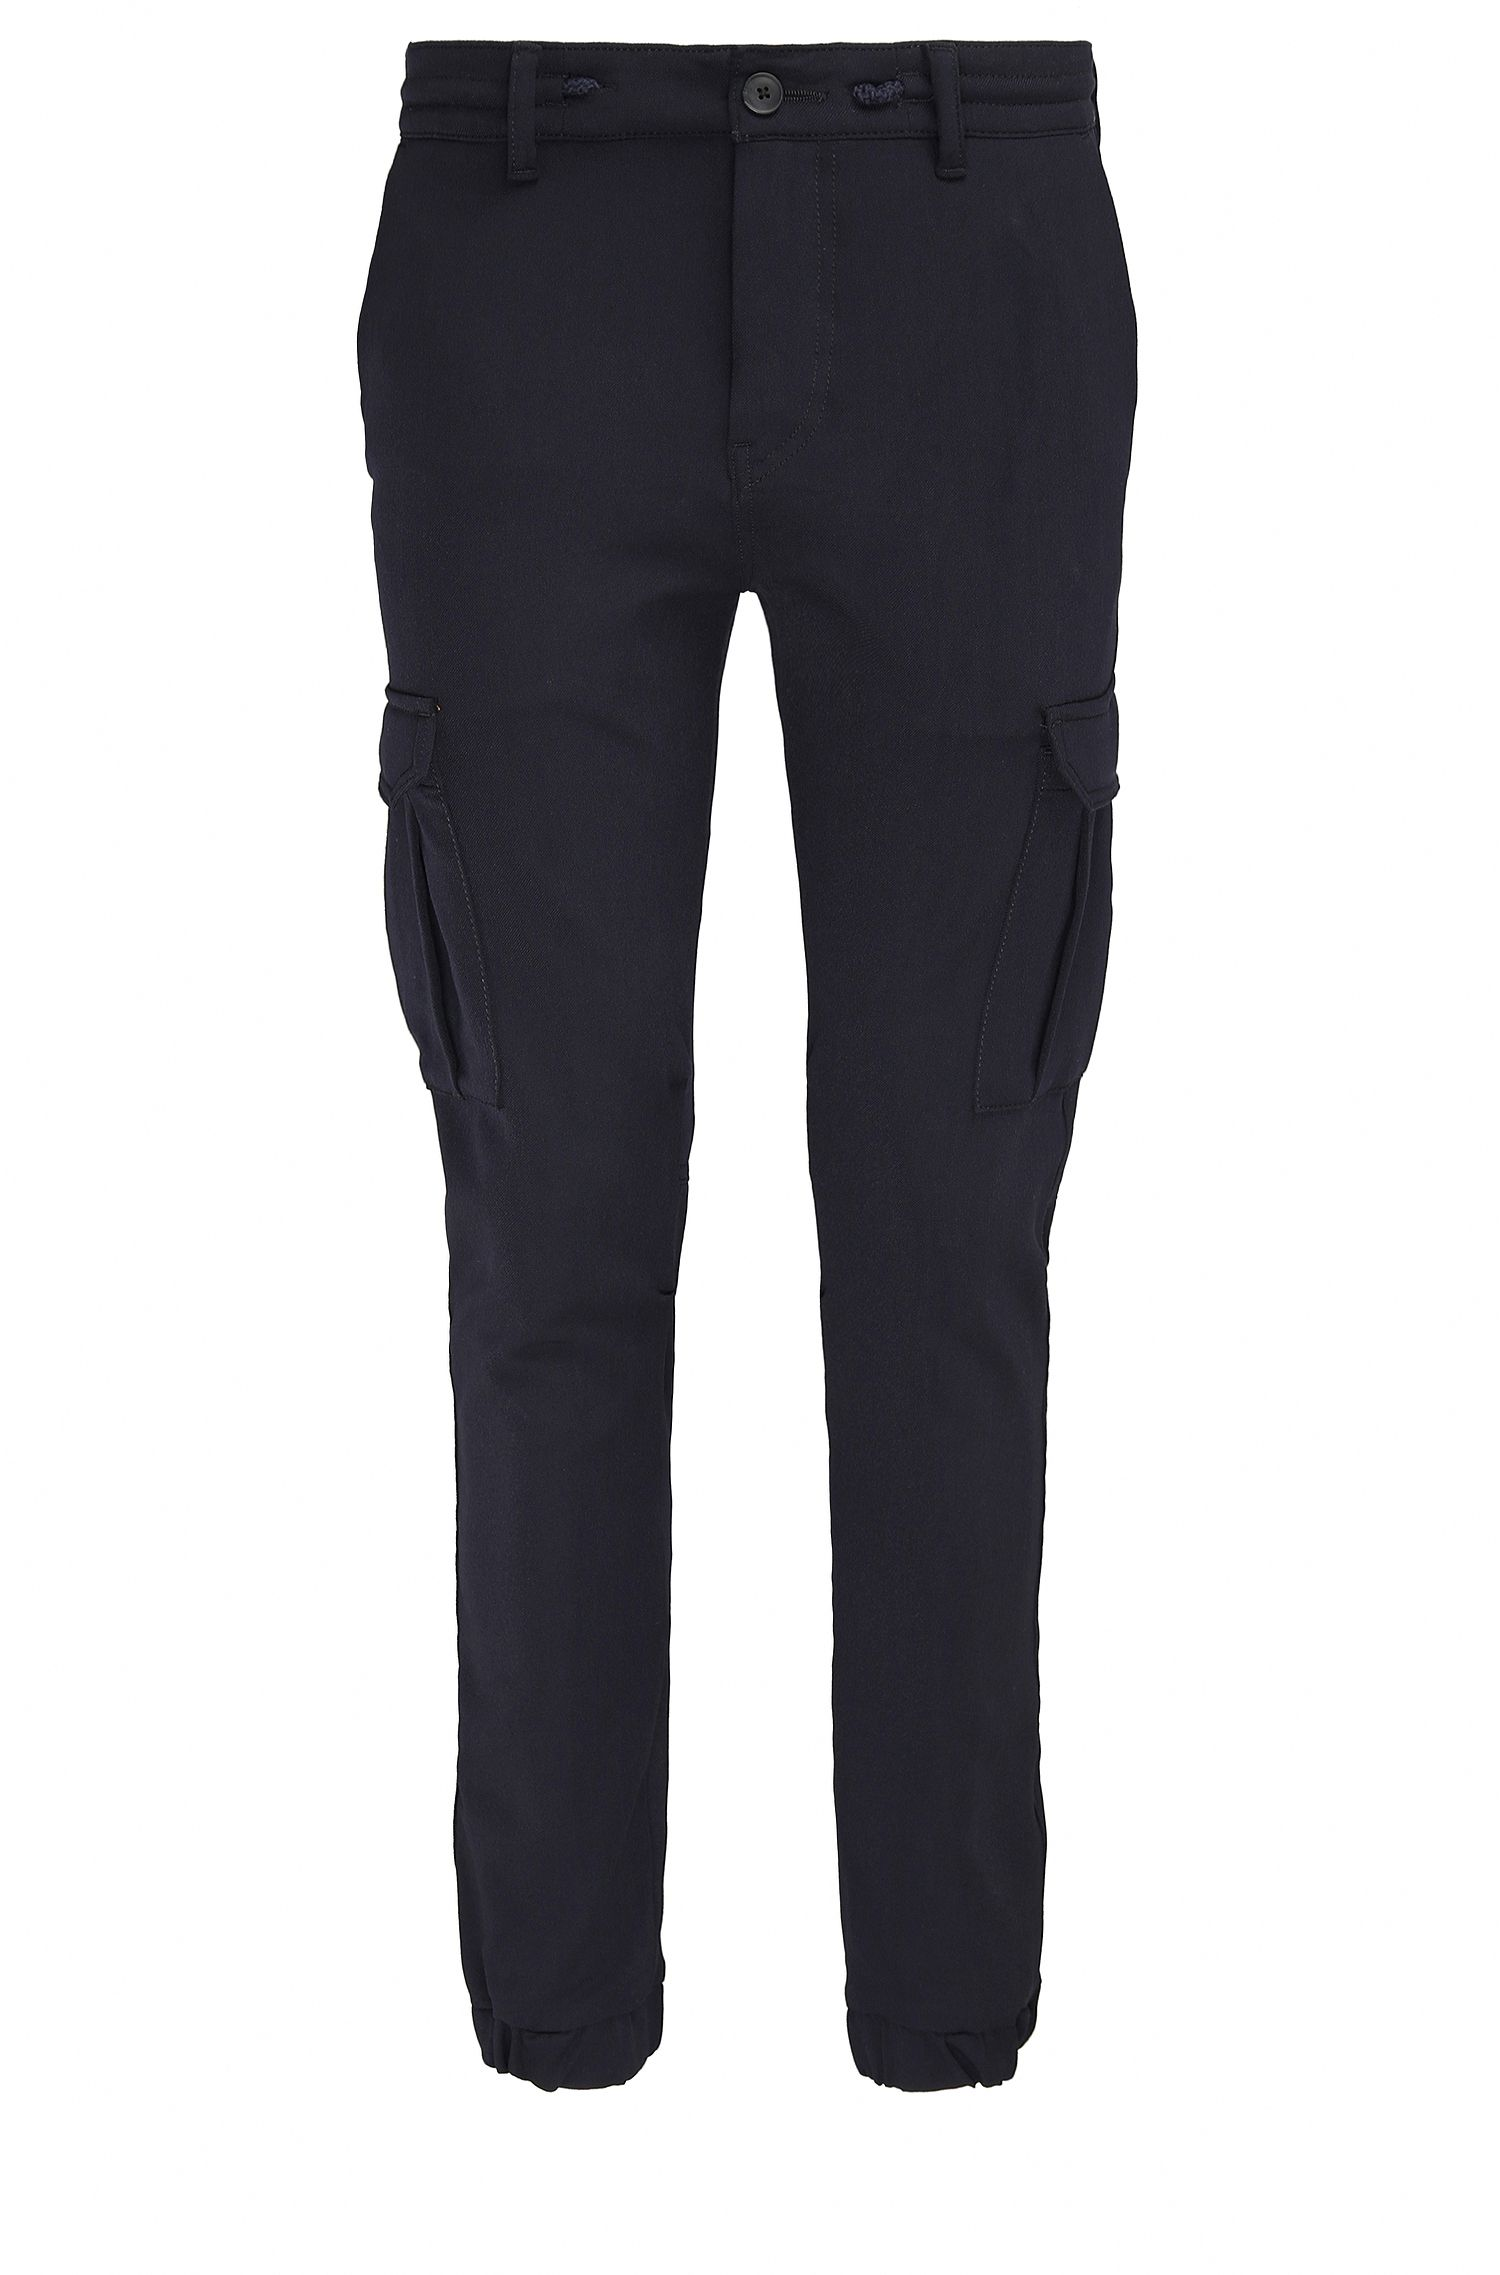 Twill Cargo Pant, Tapered Fit | Shay